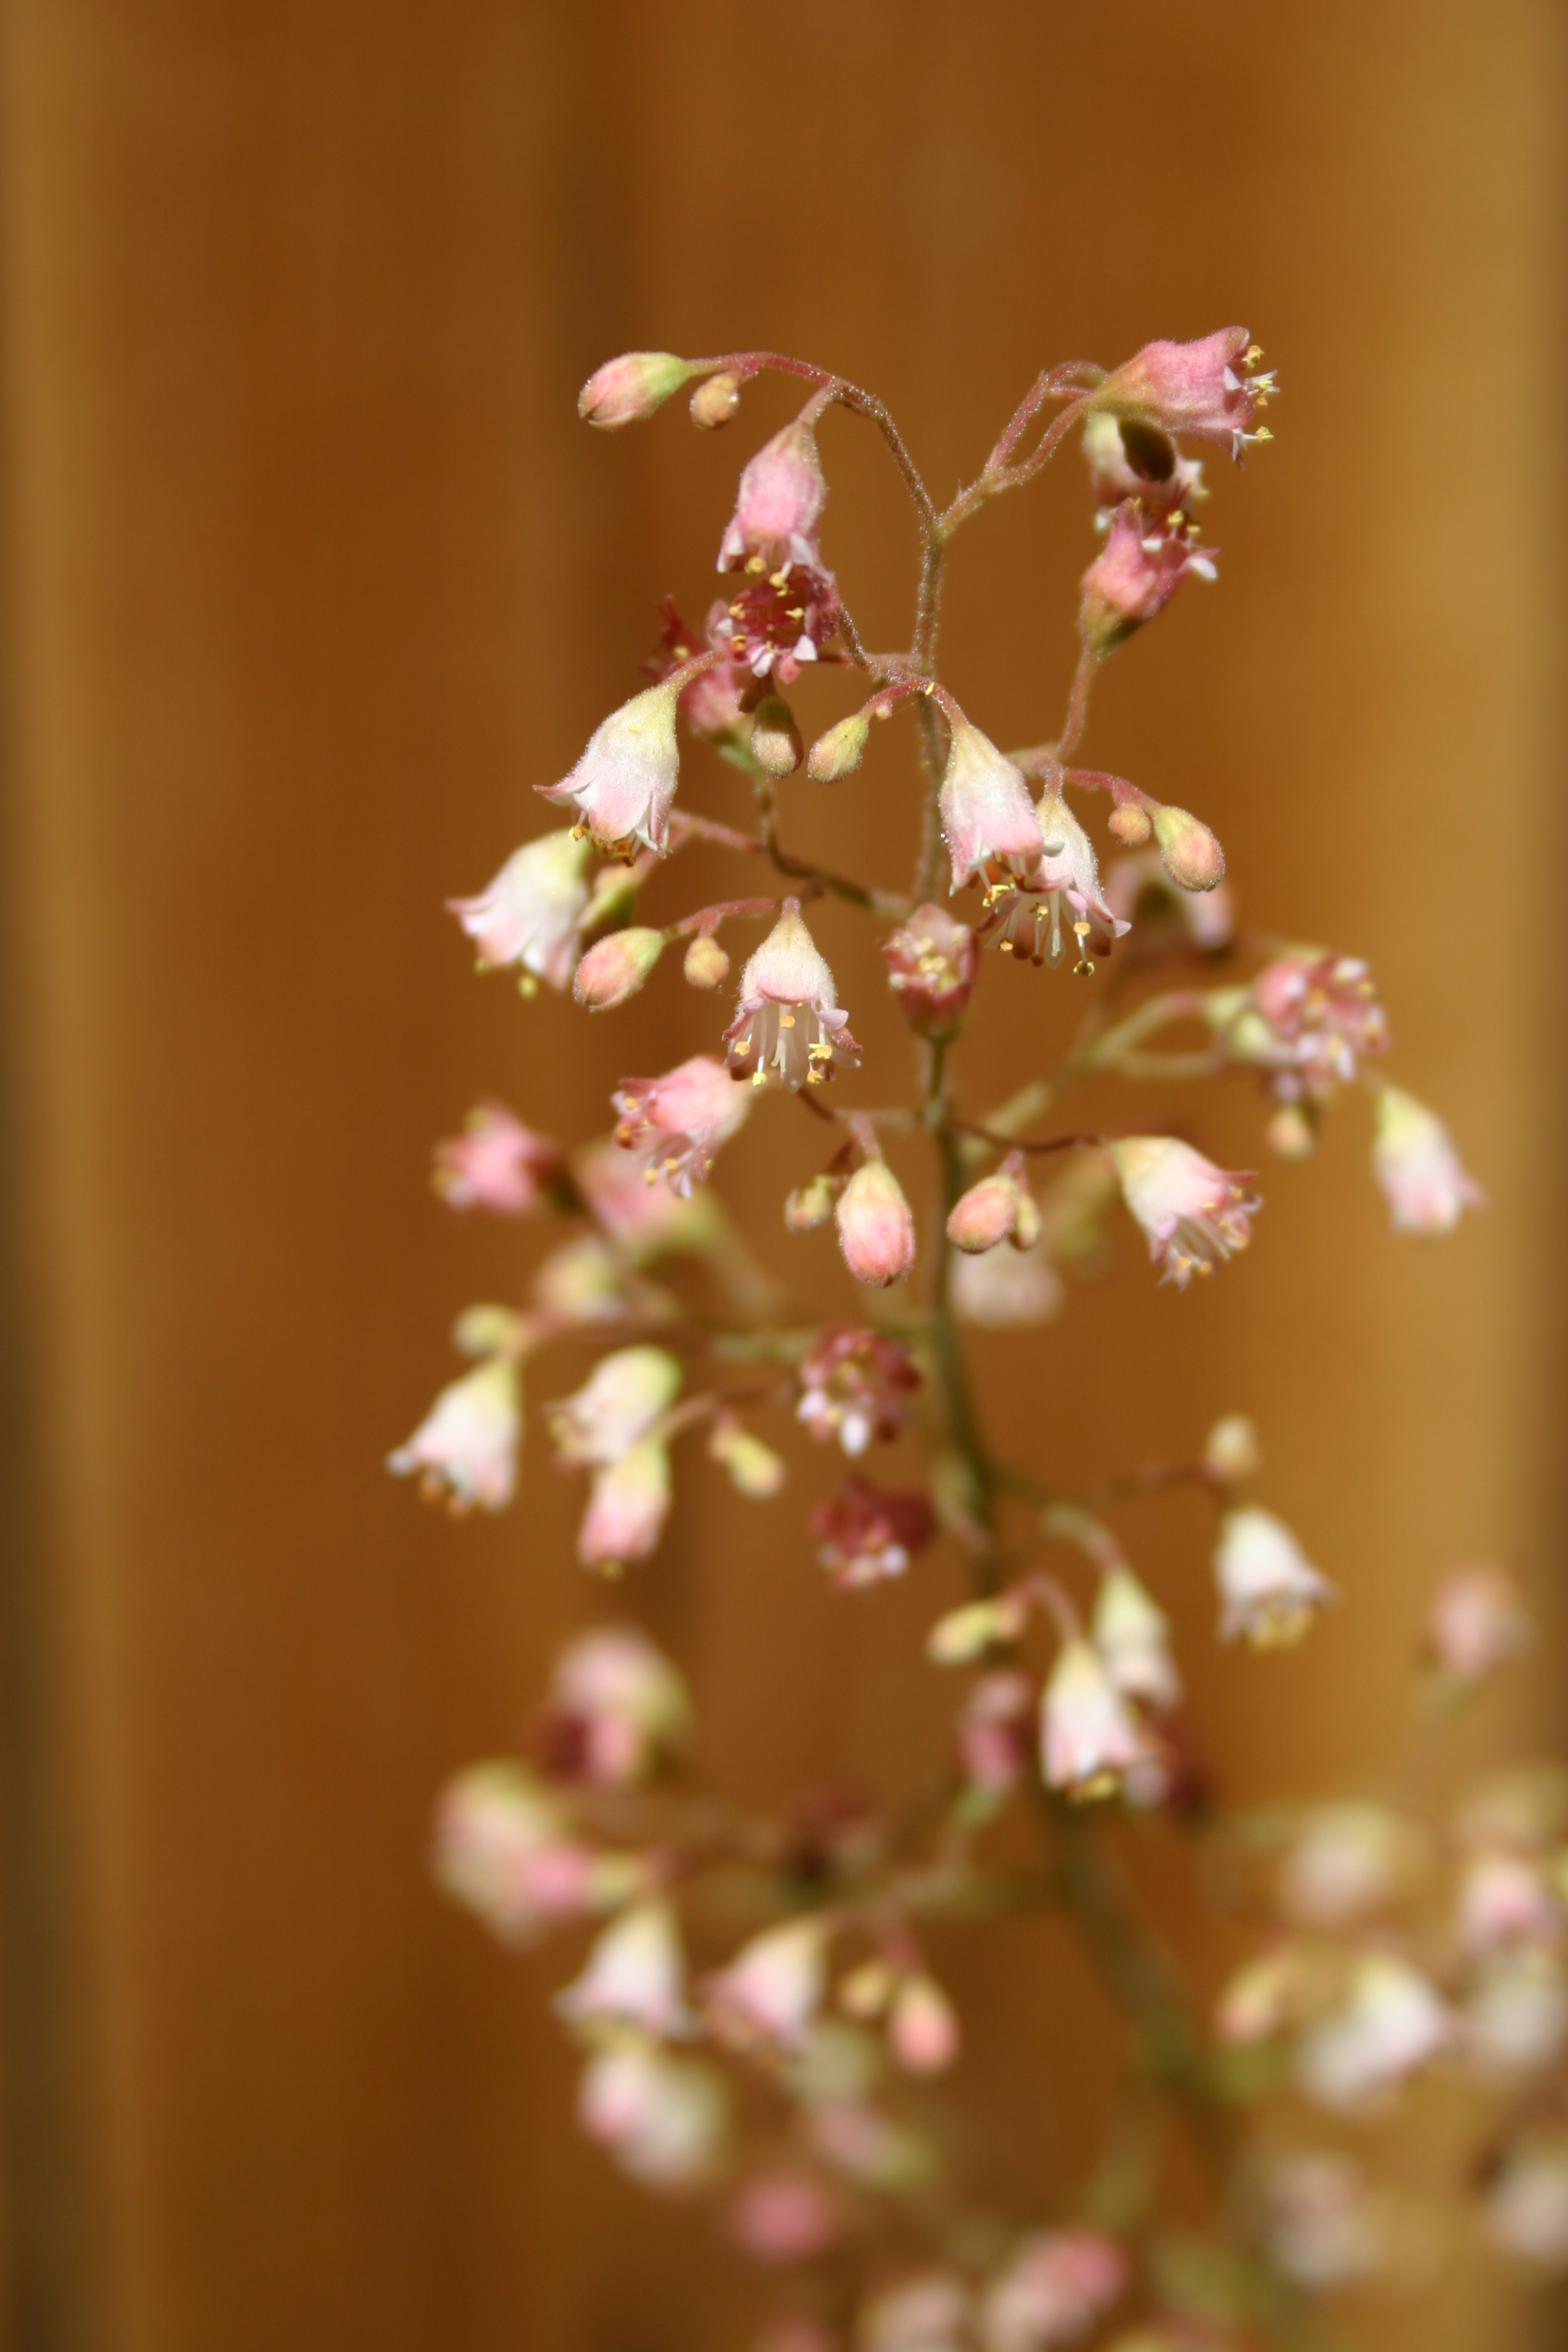 Tiny pink blooms on a flower stalk from a Heuchera plant, AKA Coral Bells.